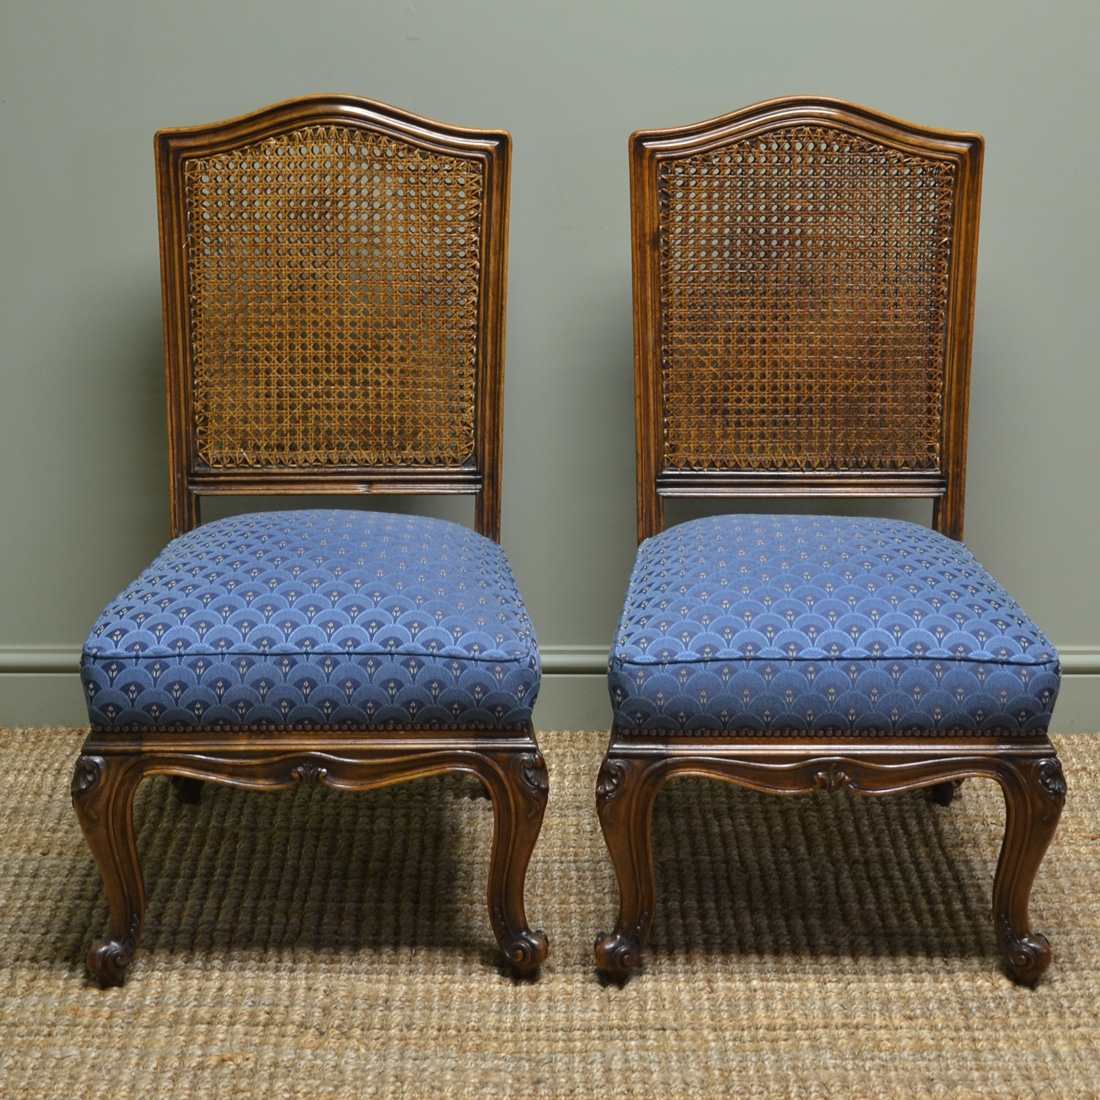 - Pair Of Edwardian Bergere Antique Walnut Side Chairs - Antiques World